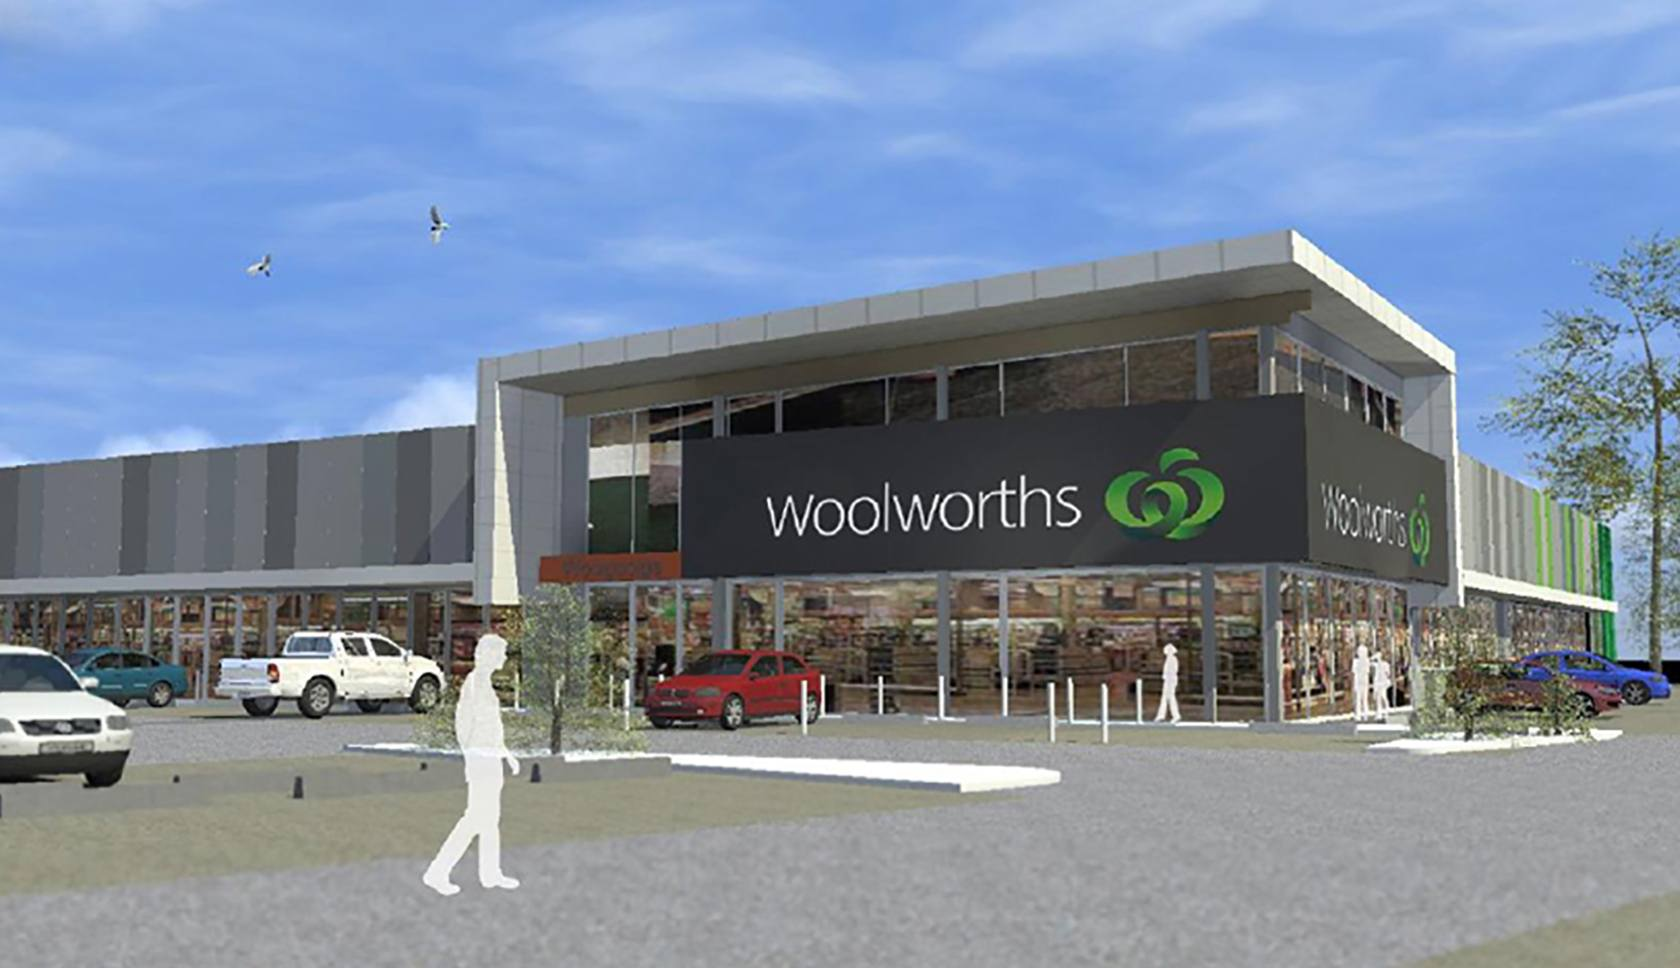 Woolworths Woolgoolga drawing of the retail outlet building entrance and car park